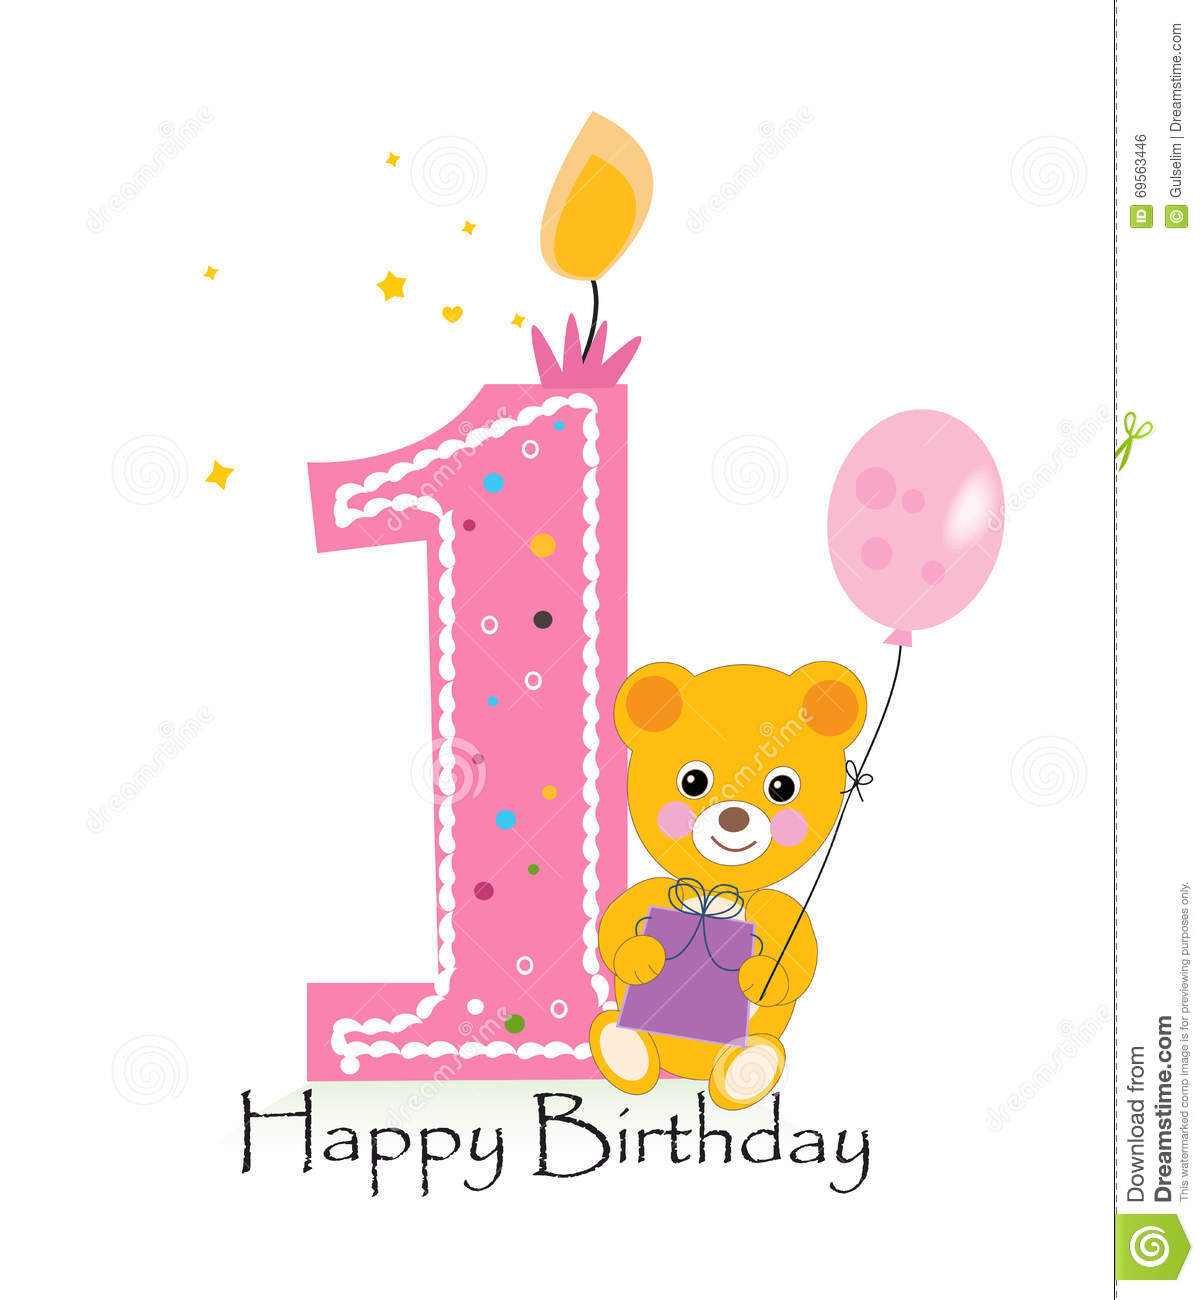 first birthday background images ; happy-first-birthday-candle-baby-birthday-greeting-card-teddy-bear-vector-background-69563446